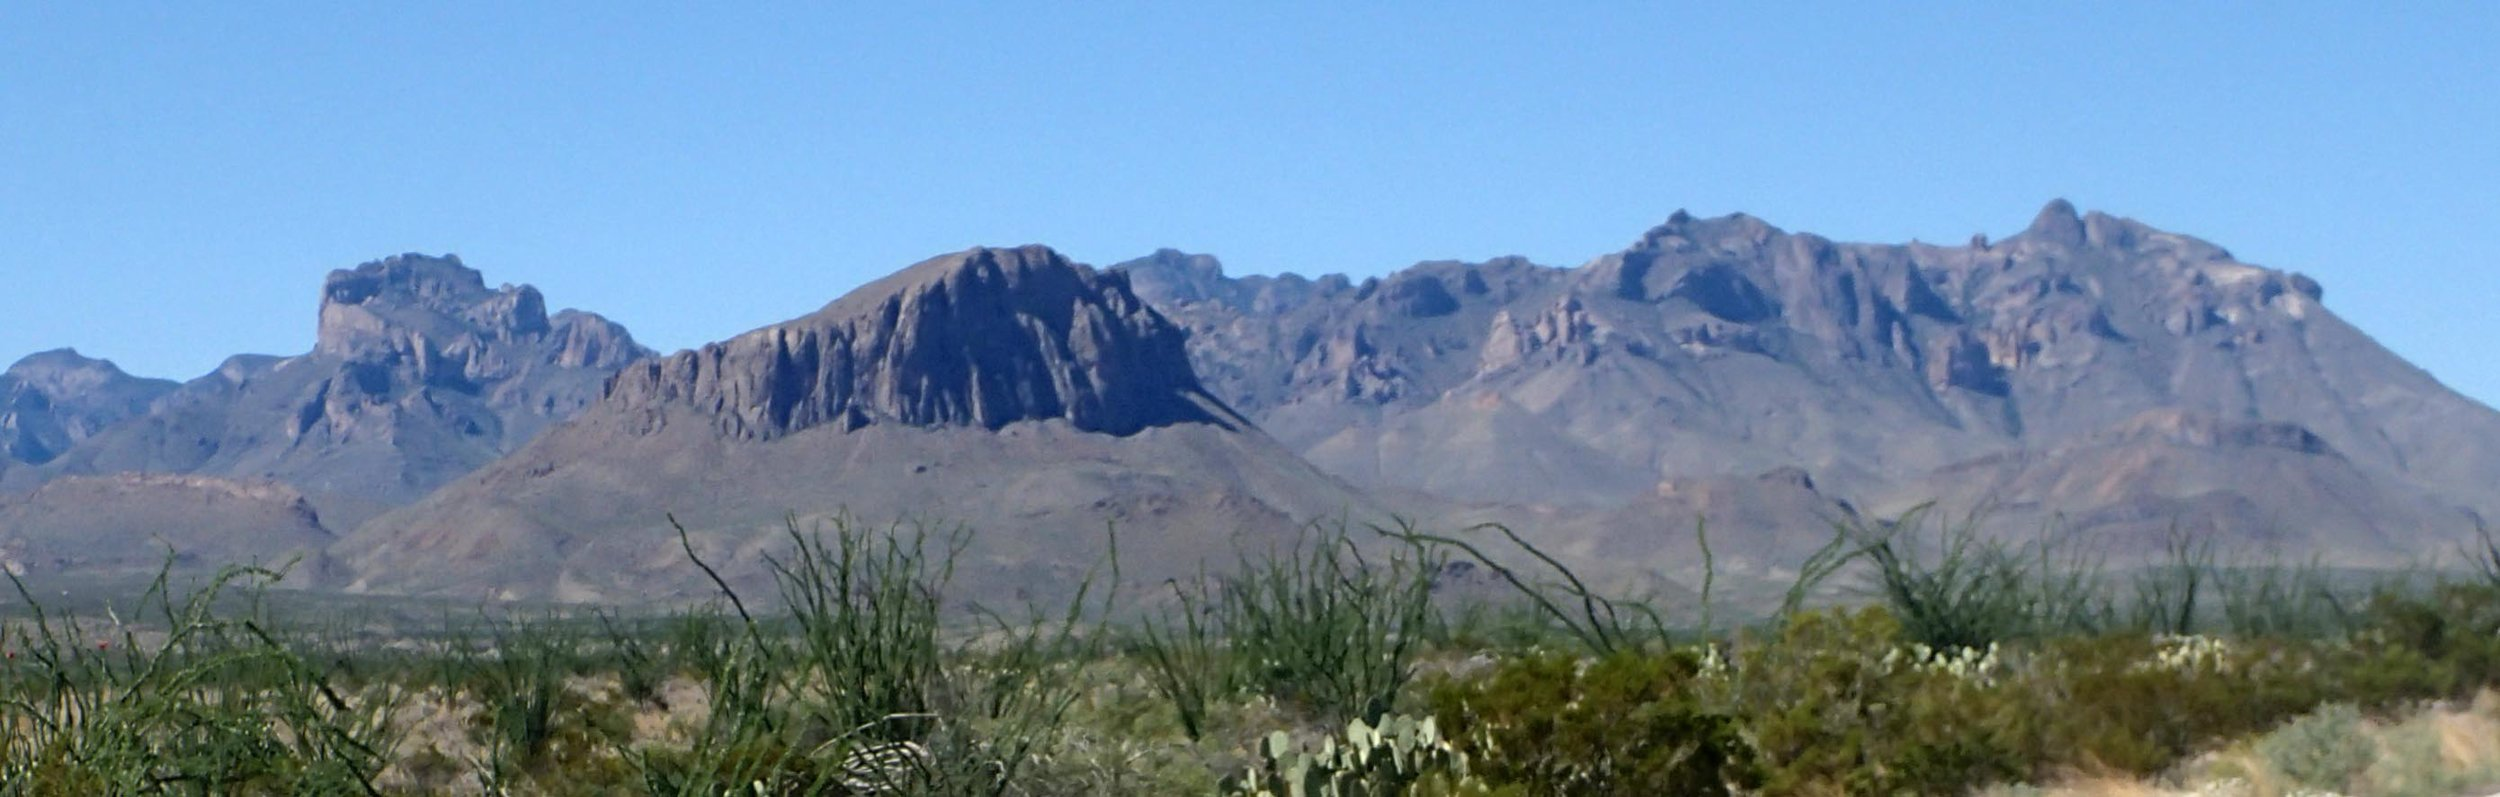 Chisos Mountains.jpg